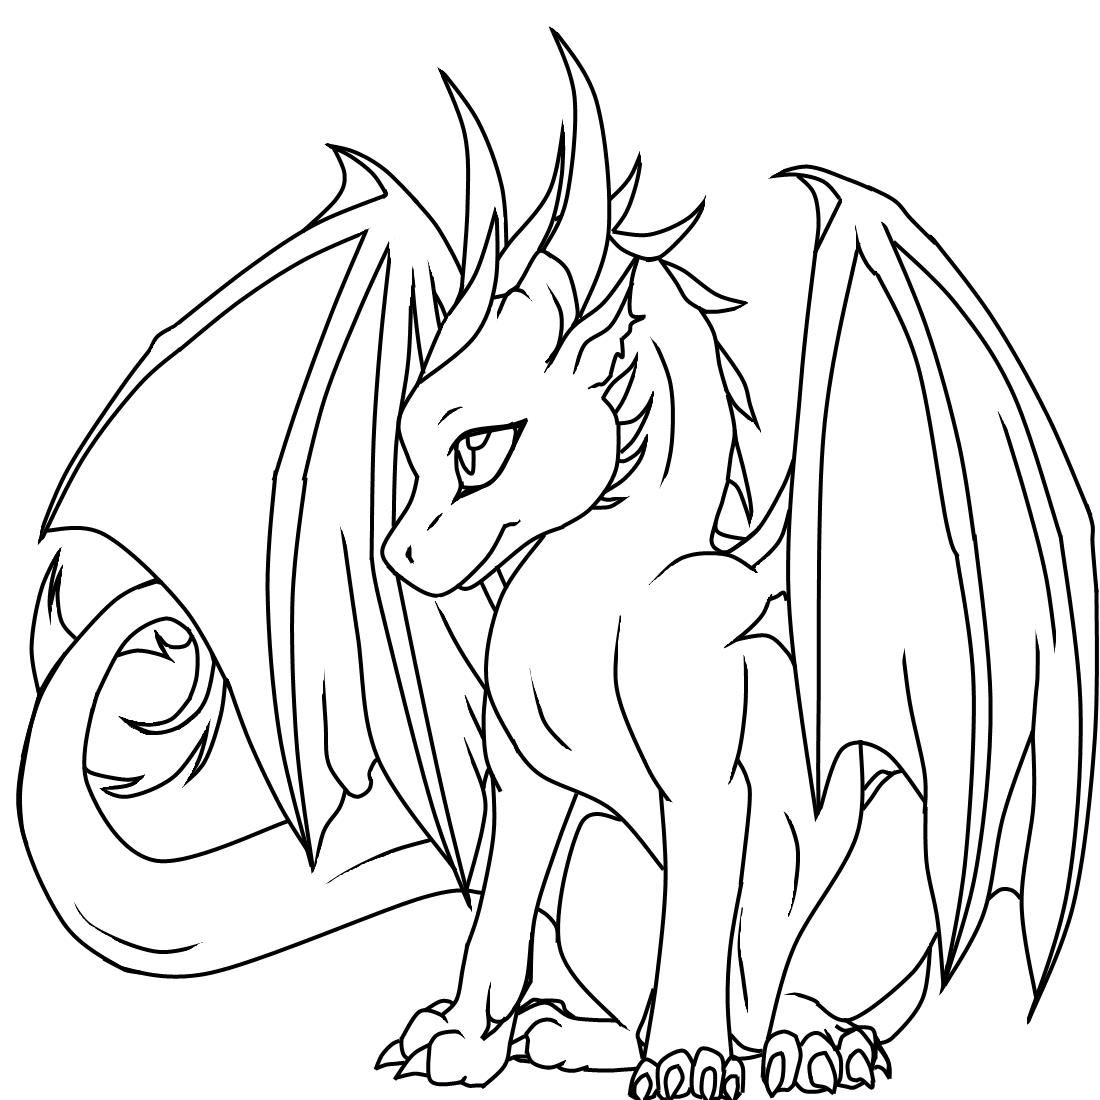 Http Colorings Co Coloring Pages For Girls Dragons Coloring